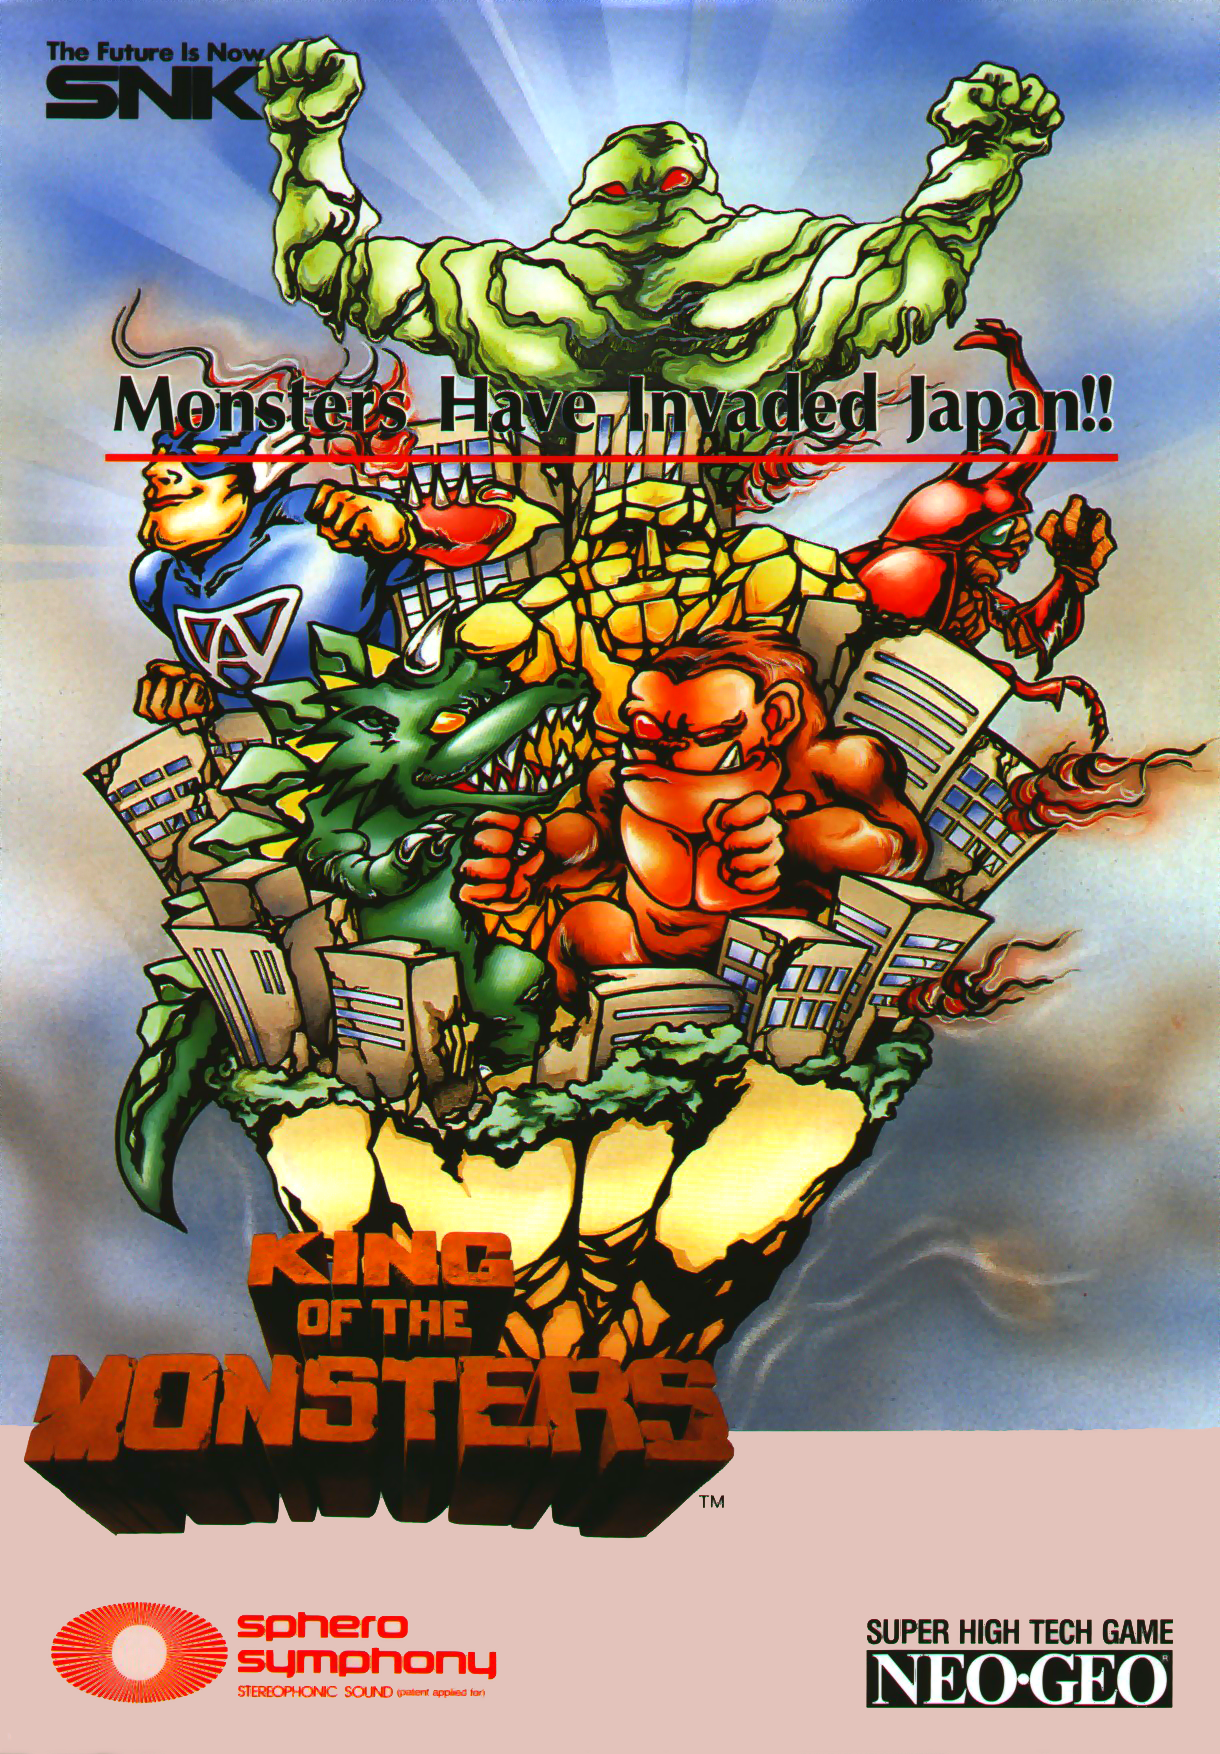 King of the Monsters (set 1) flyer